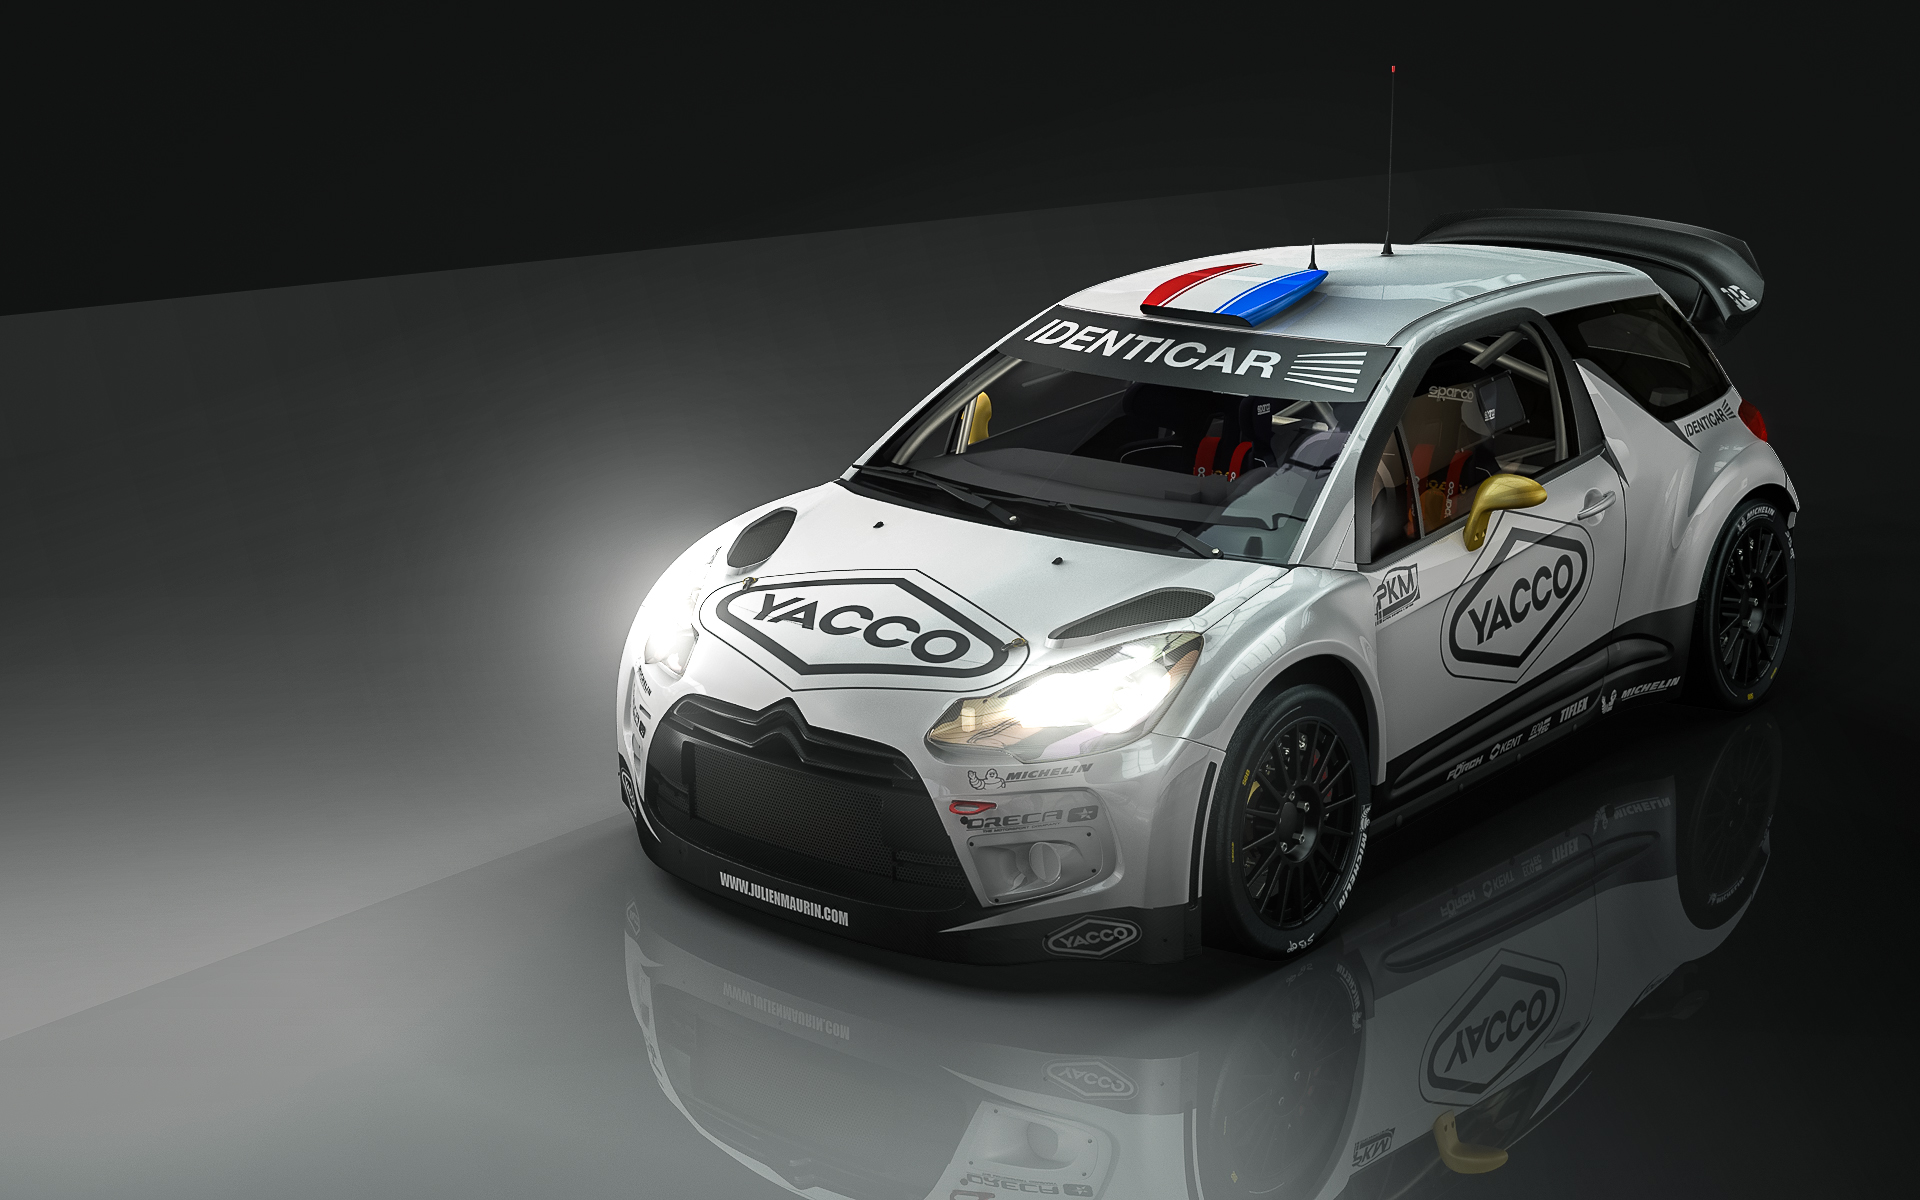 julien maurin au volant d une ds3 wrc en championnat de france des rallyes terre oreca. Black Bedroom Furniture Sets. Home Design Ideas